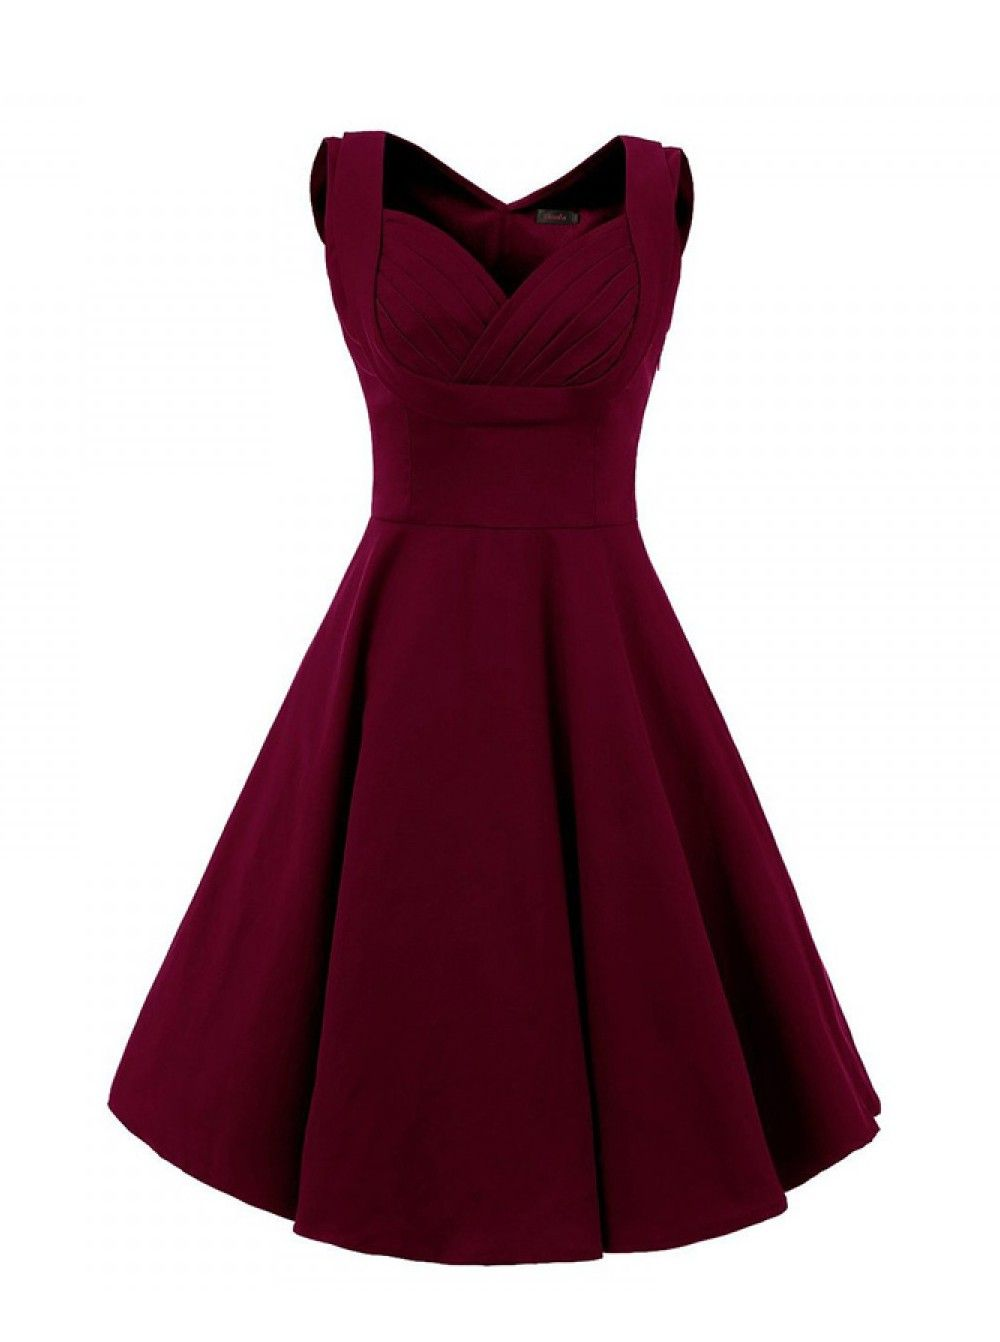 fdec6da7c7dab Women Vintage Style Square Neck Knee Length Burgundy Swing Party Dress